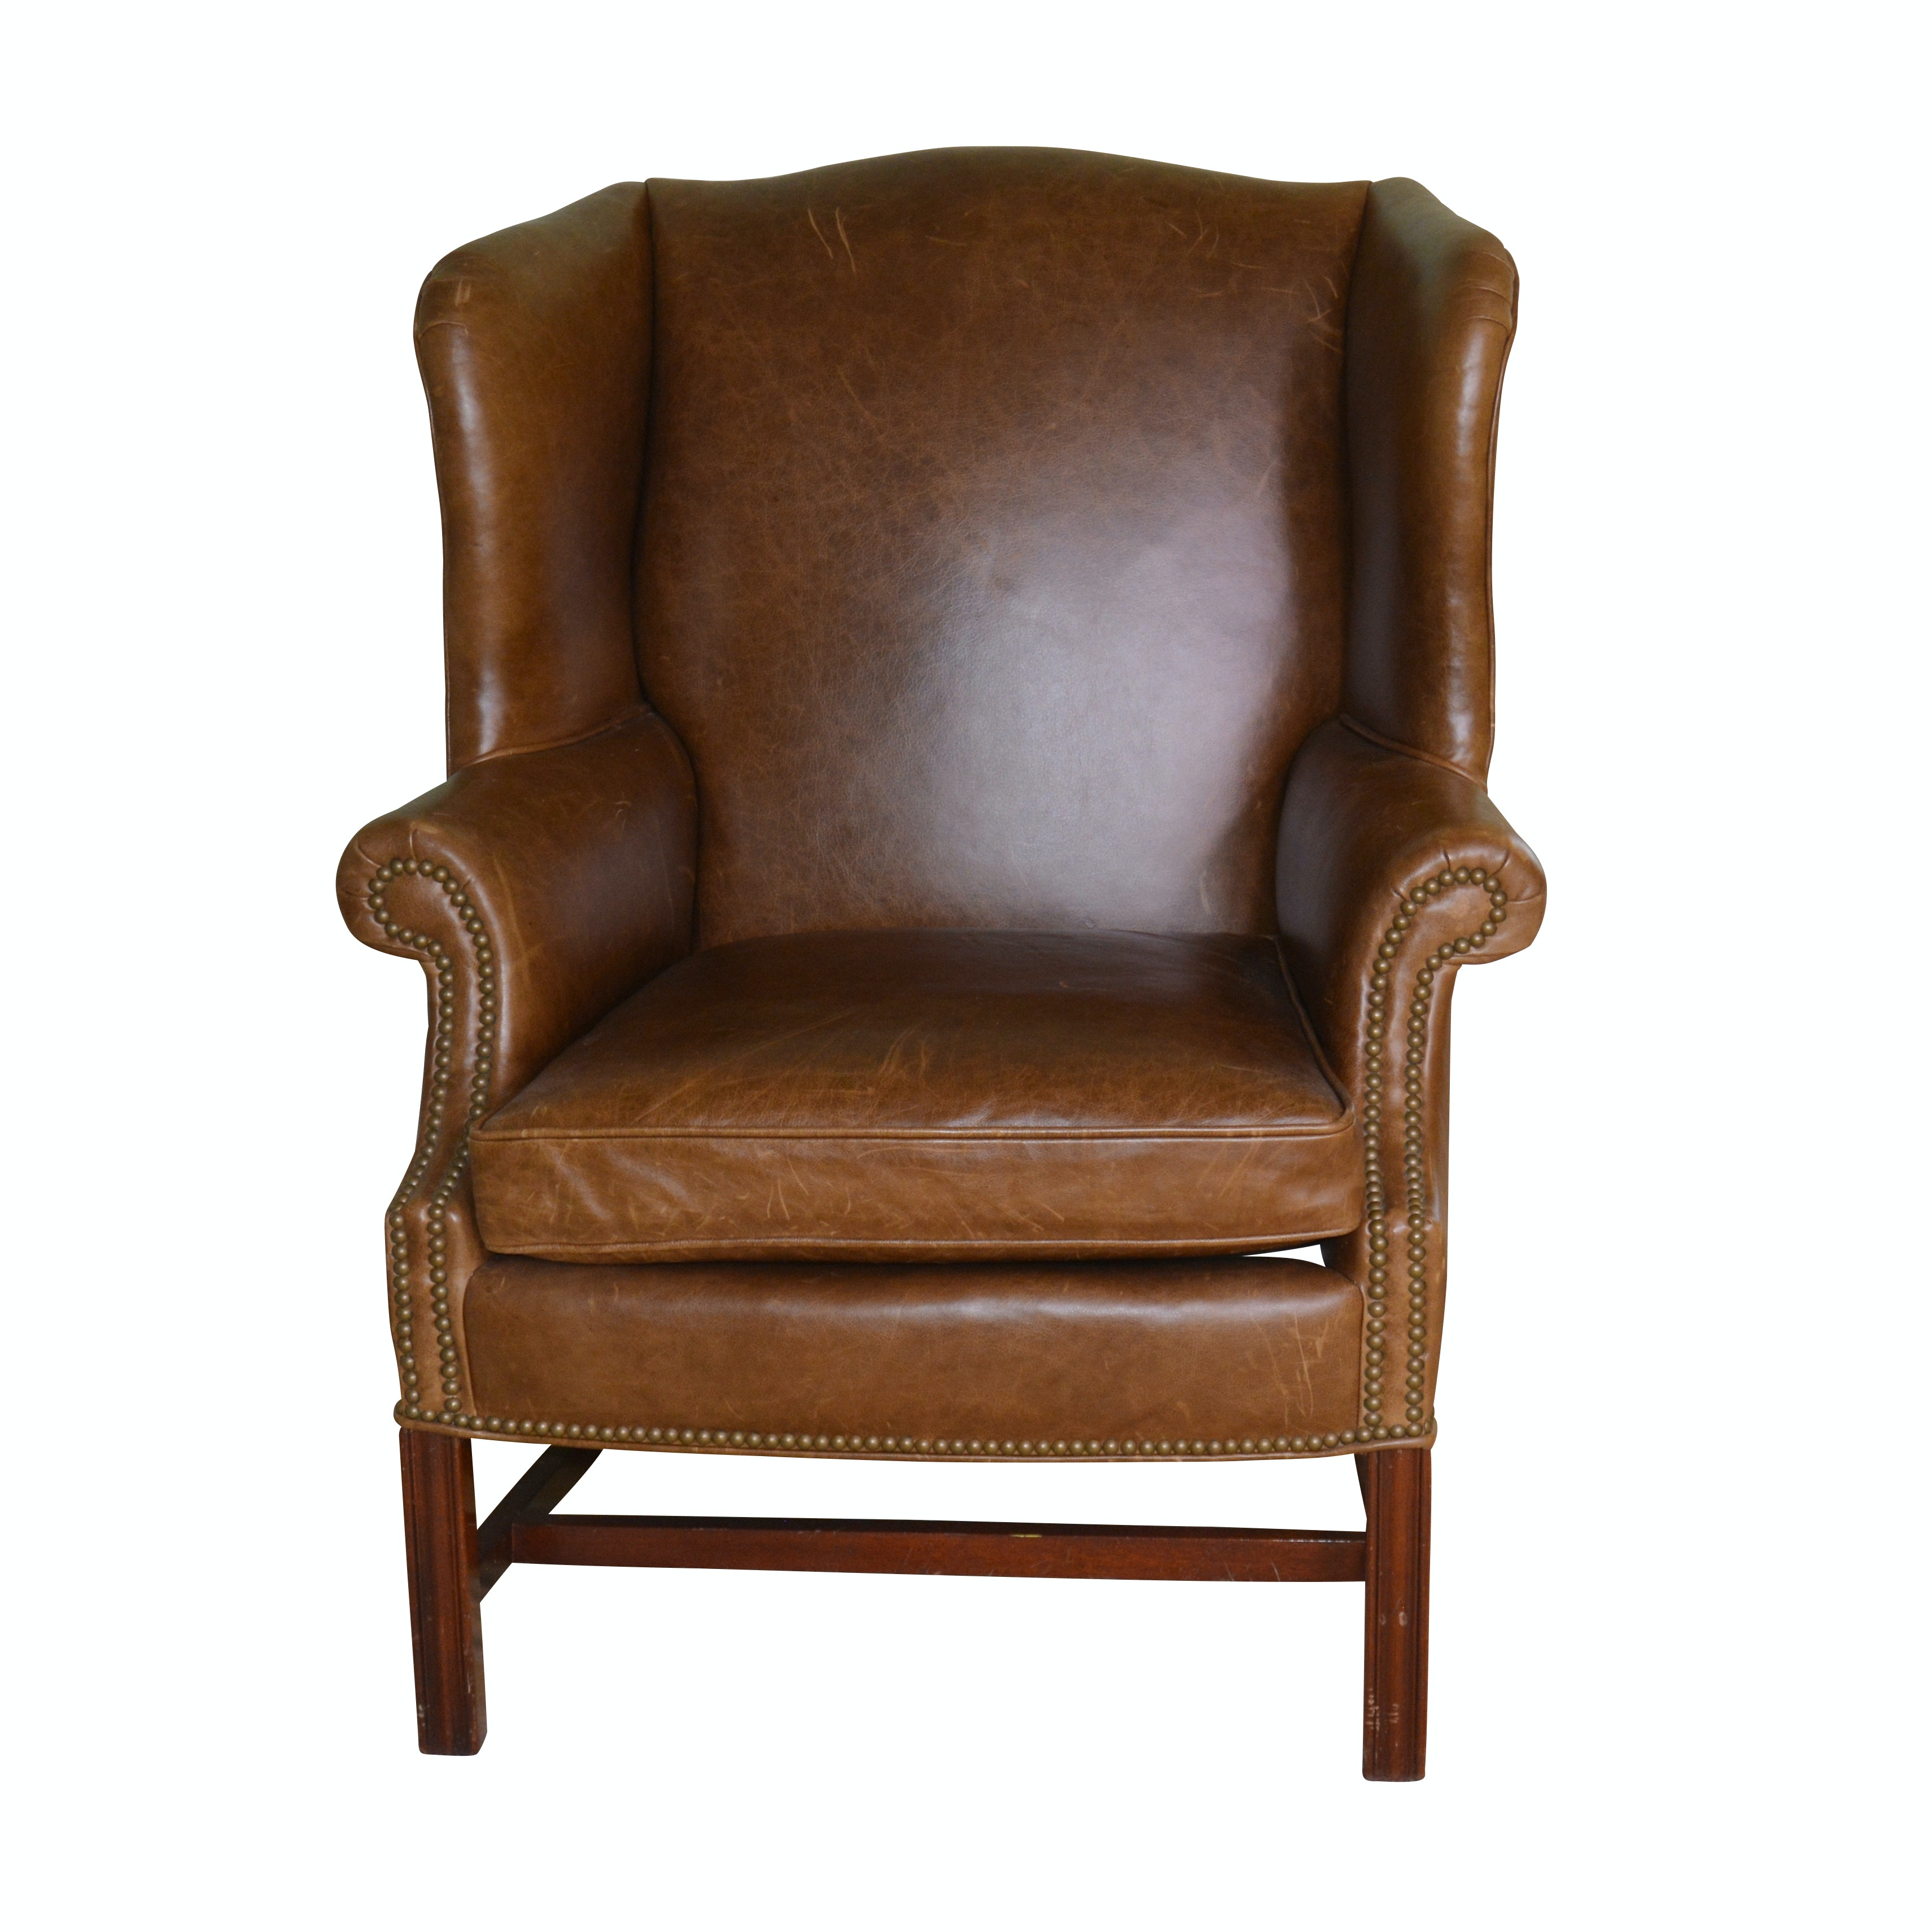 Chippendale Style Leather Wingback Chair, 20th Century